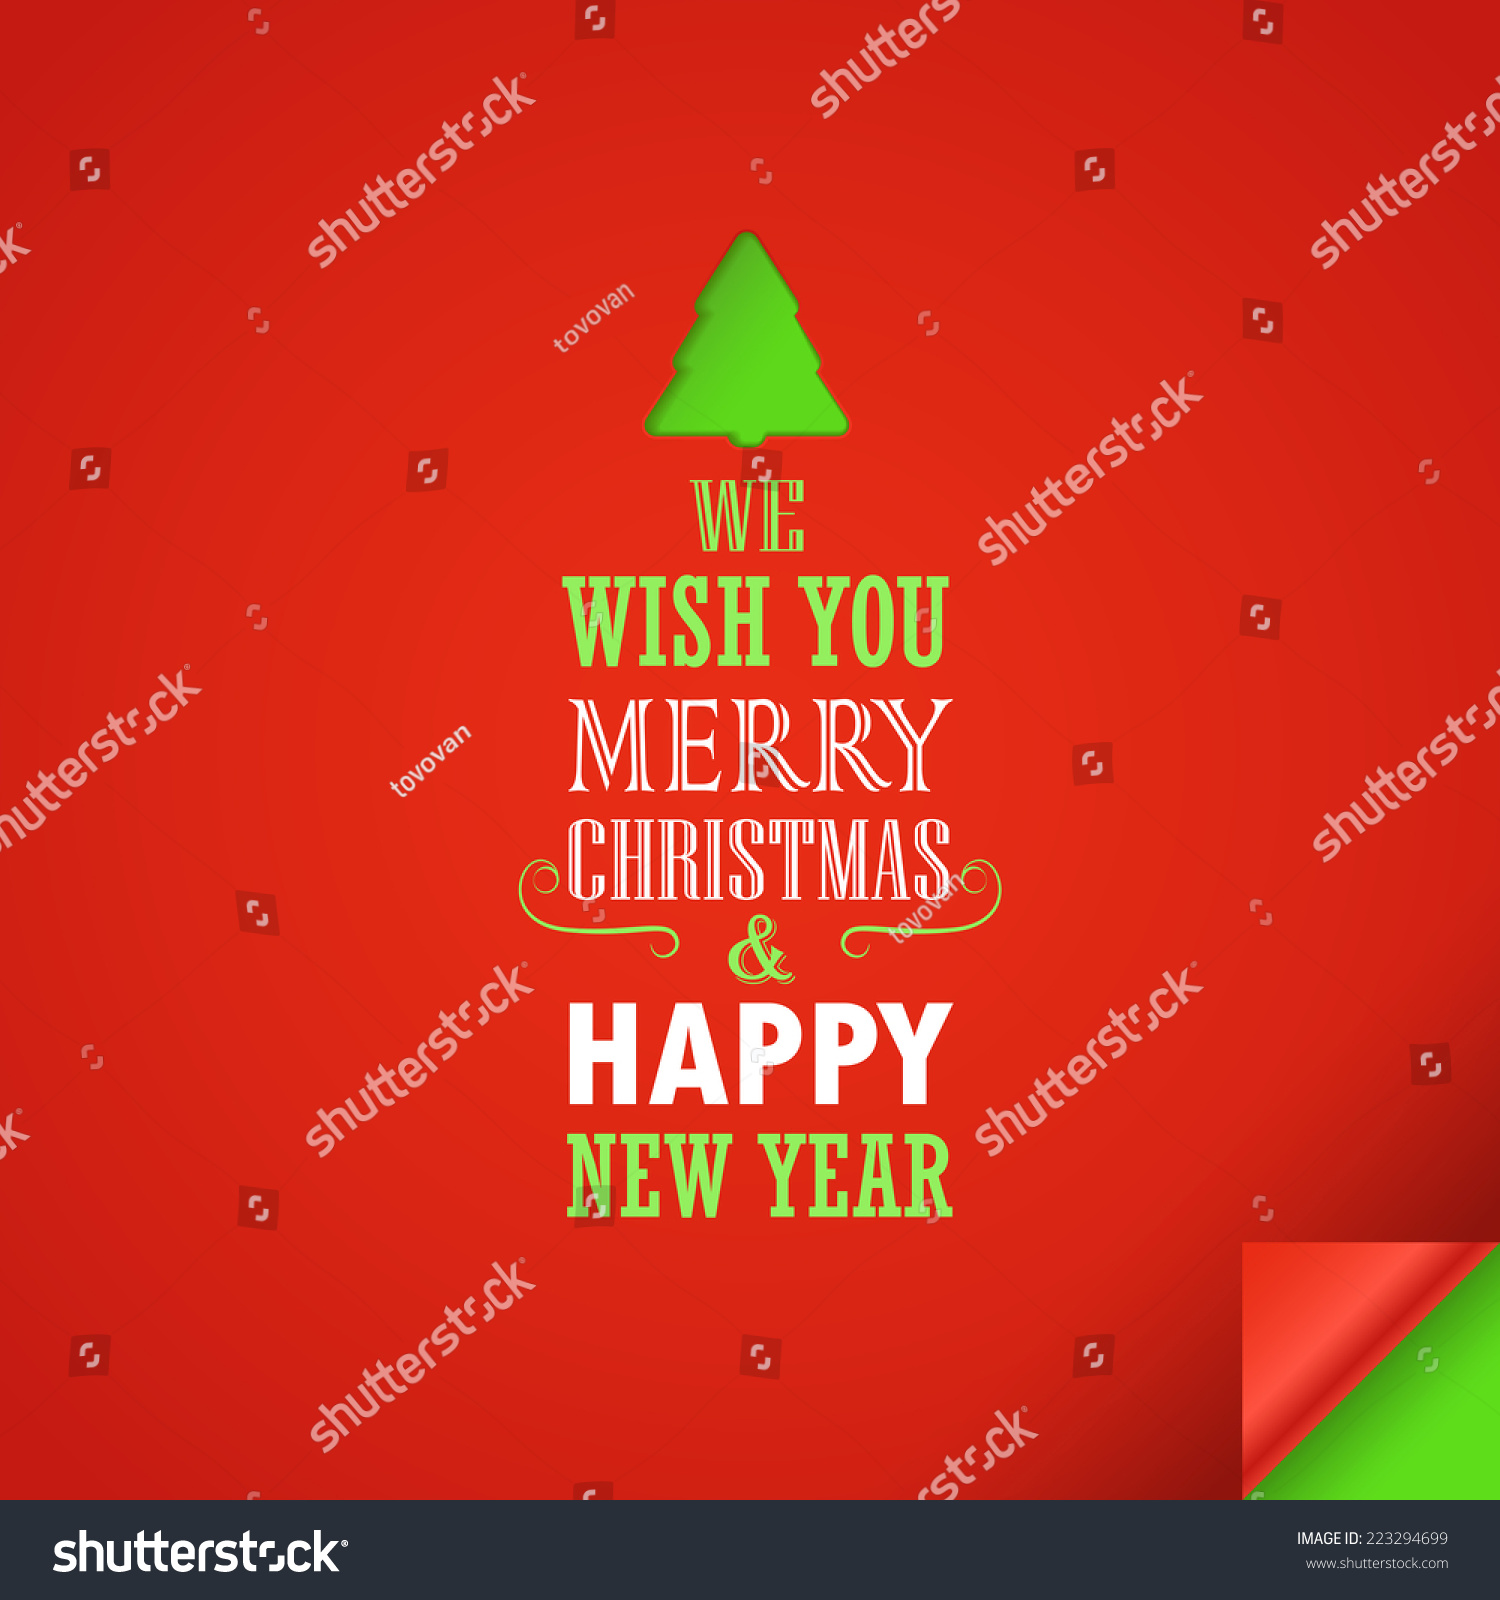 Merry Christmas And A Happy New Year Greeting Card. Design ...